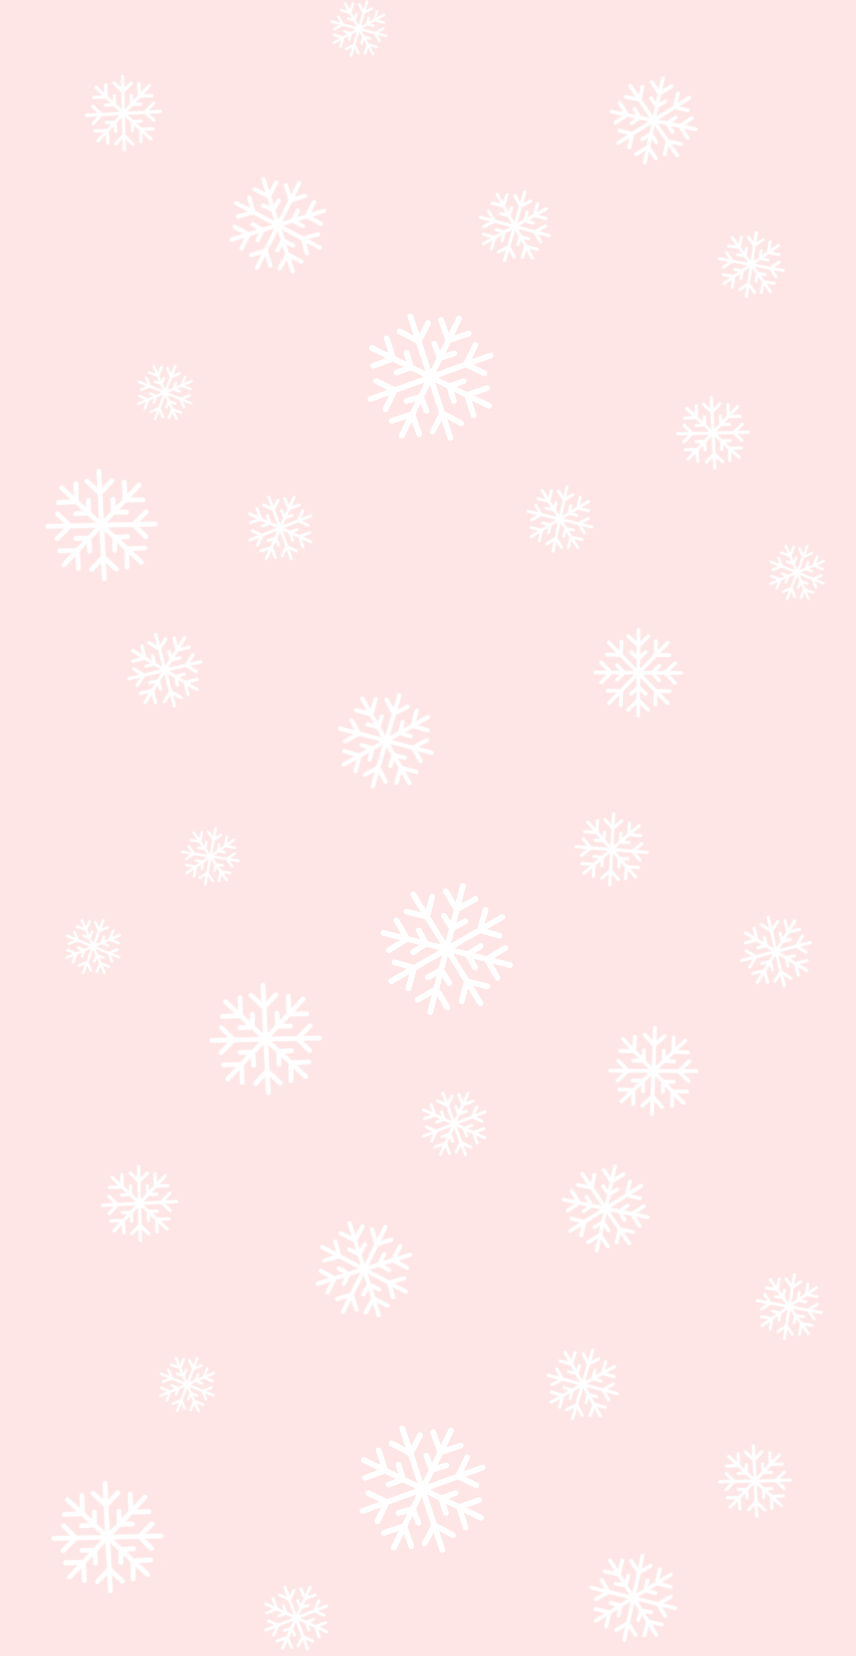 Snowflakes pink phone wallpaper